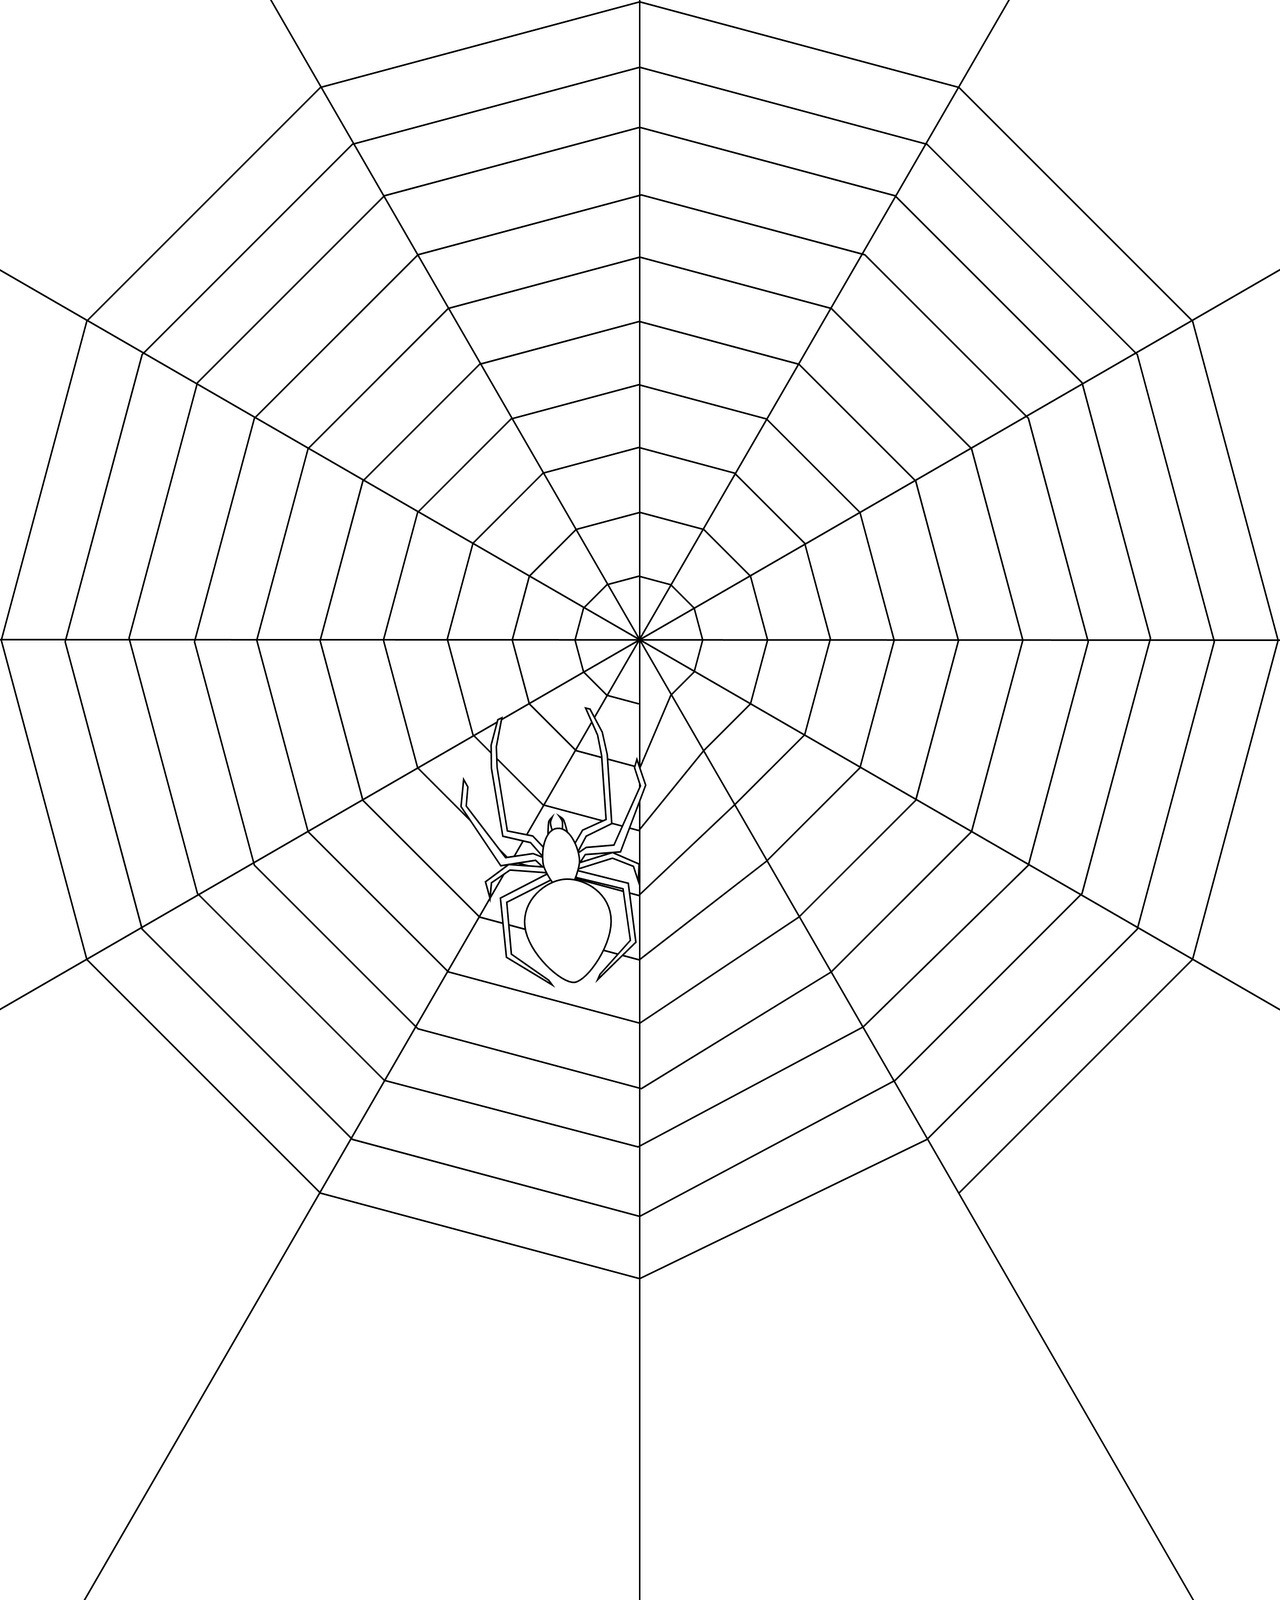 Drawn spider web kids Page Spider Web com Coloring